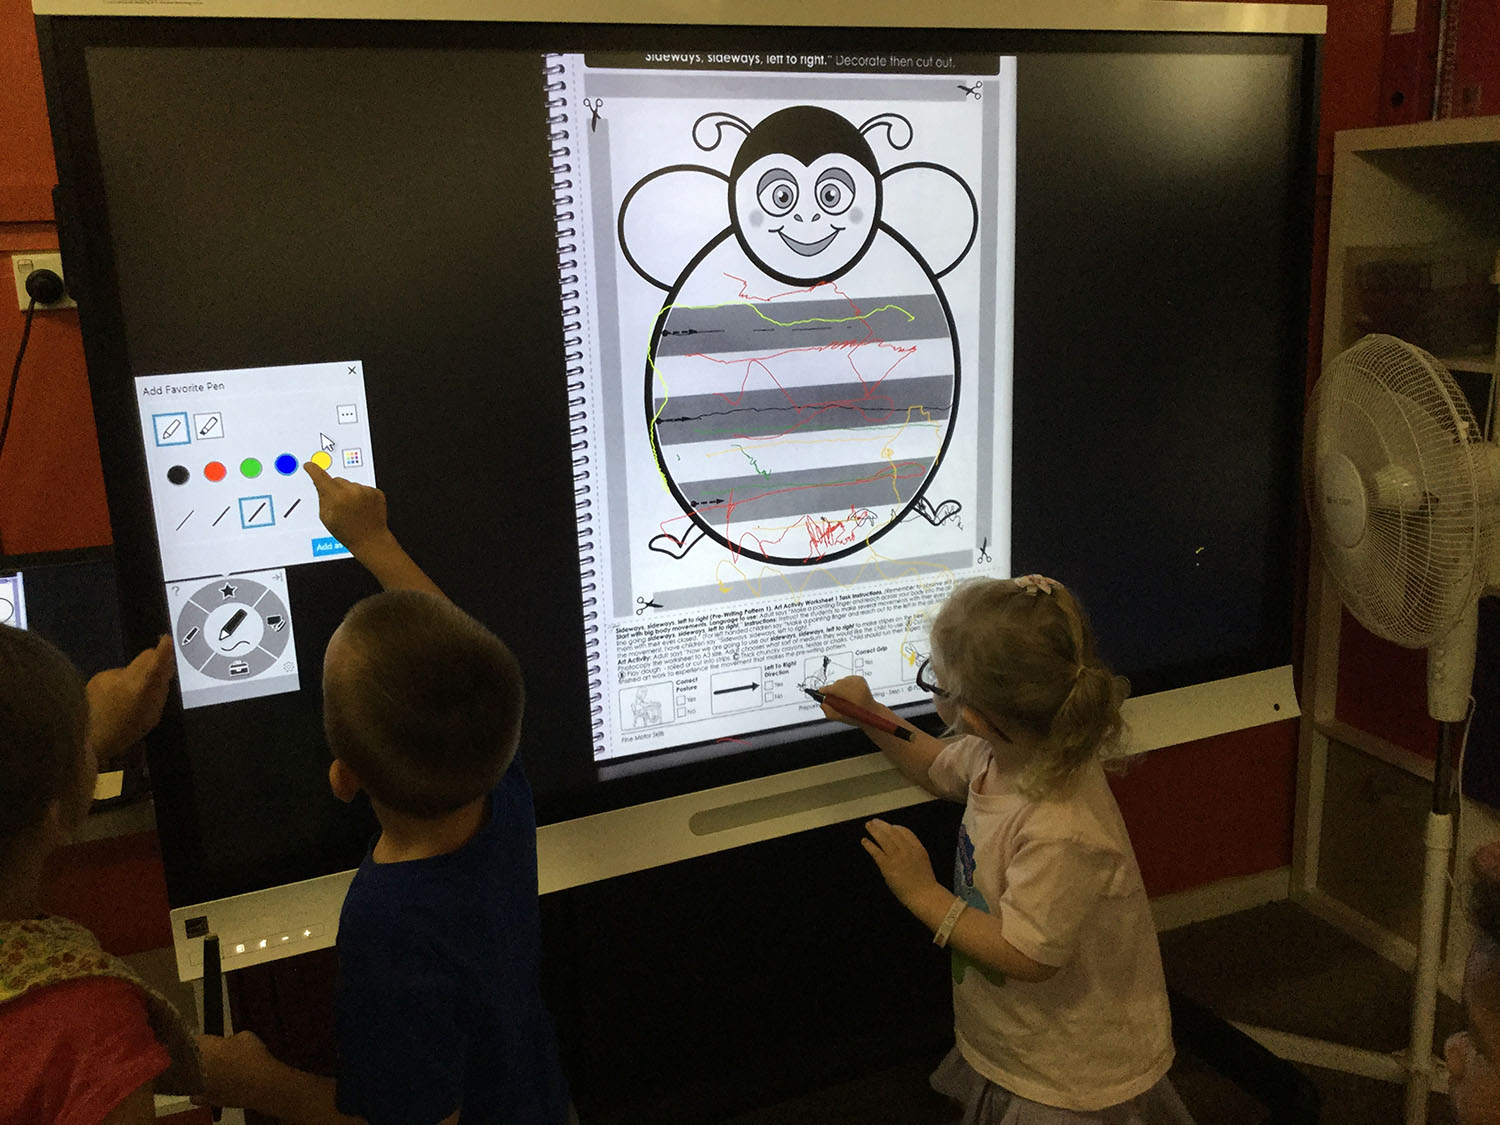 New Whiteboard technology transforms learning for one NSW preschool